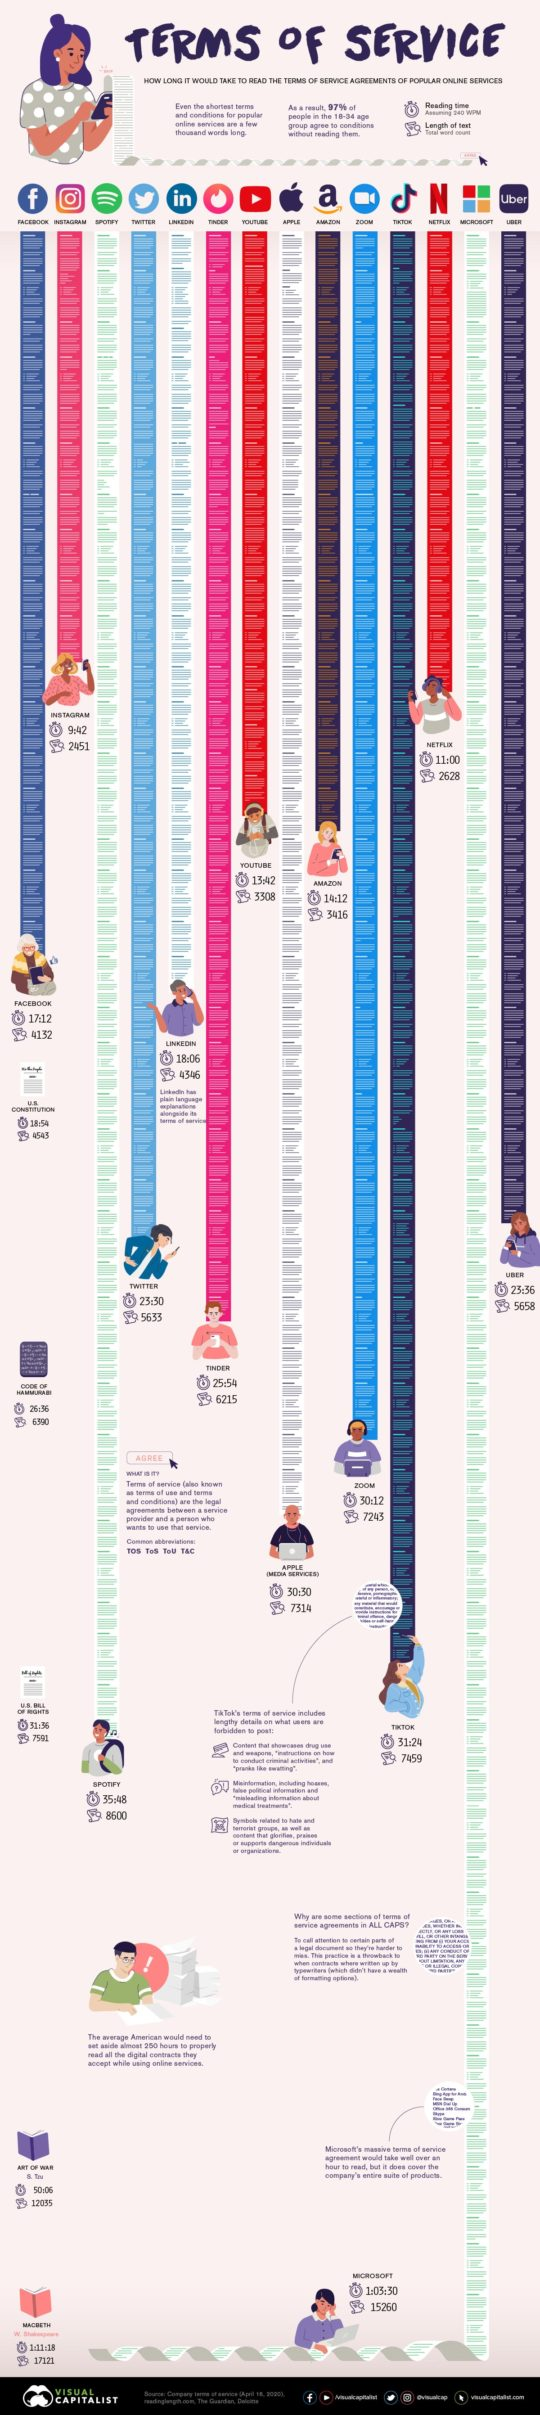 Reading time terms of service versus books - full infographic